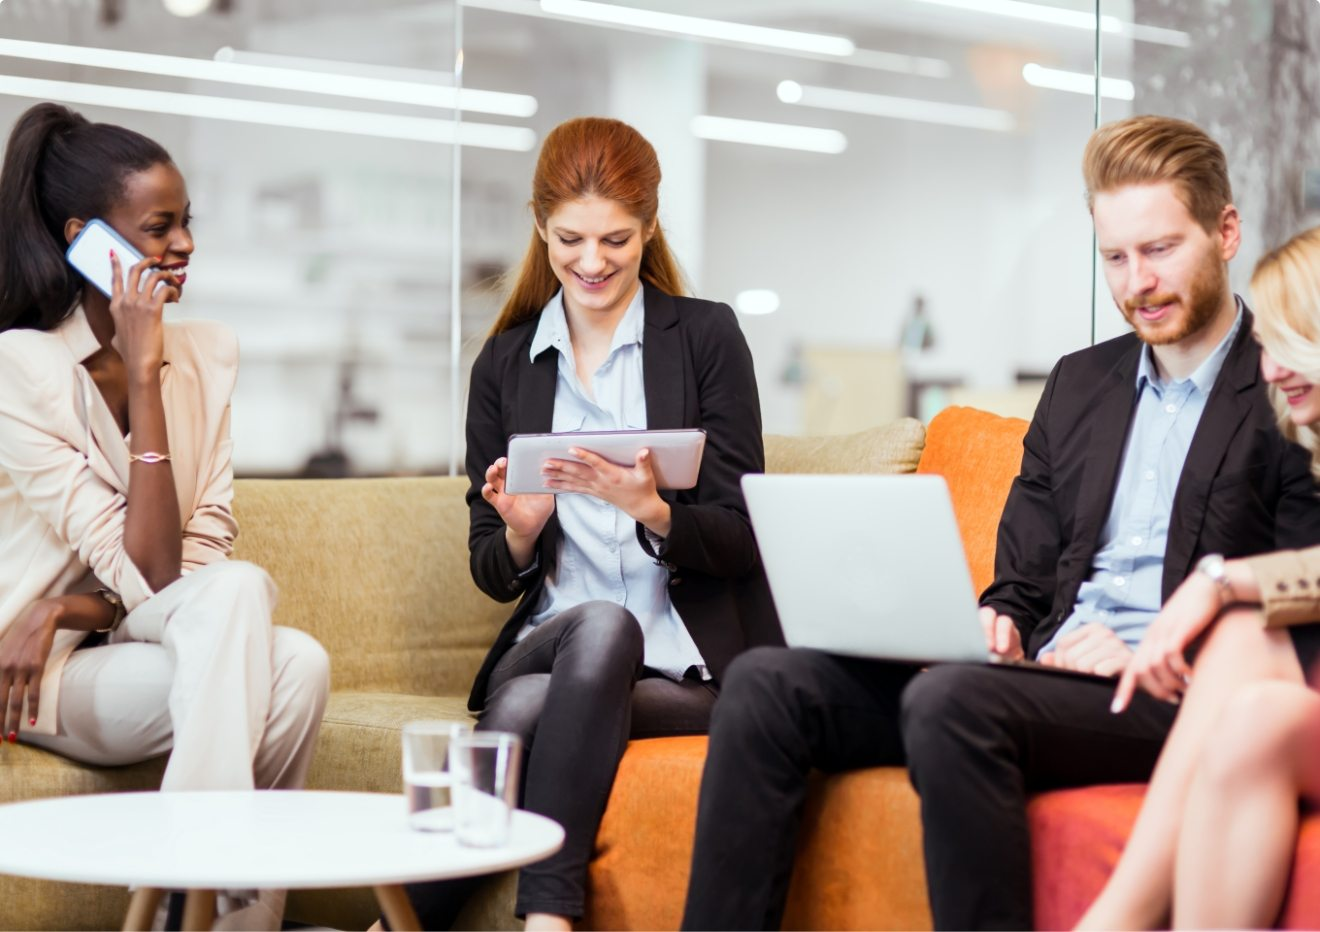 business-people-collaborating-in-office-and-DV2TMHA